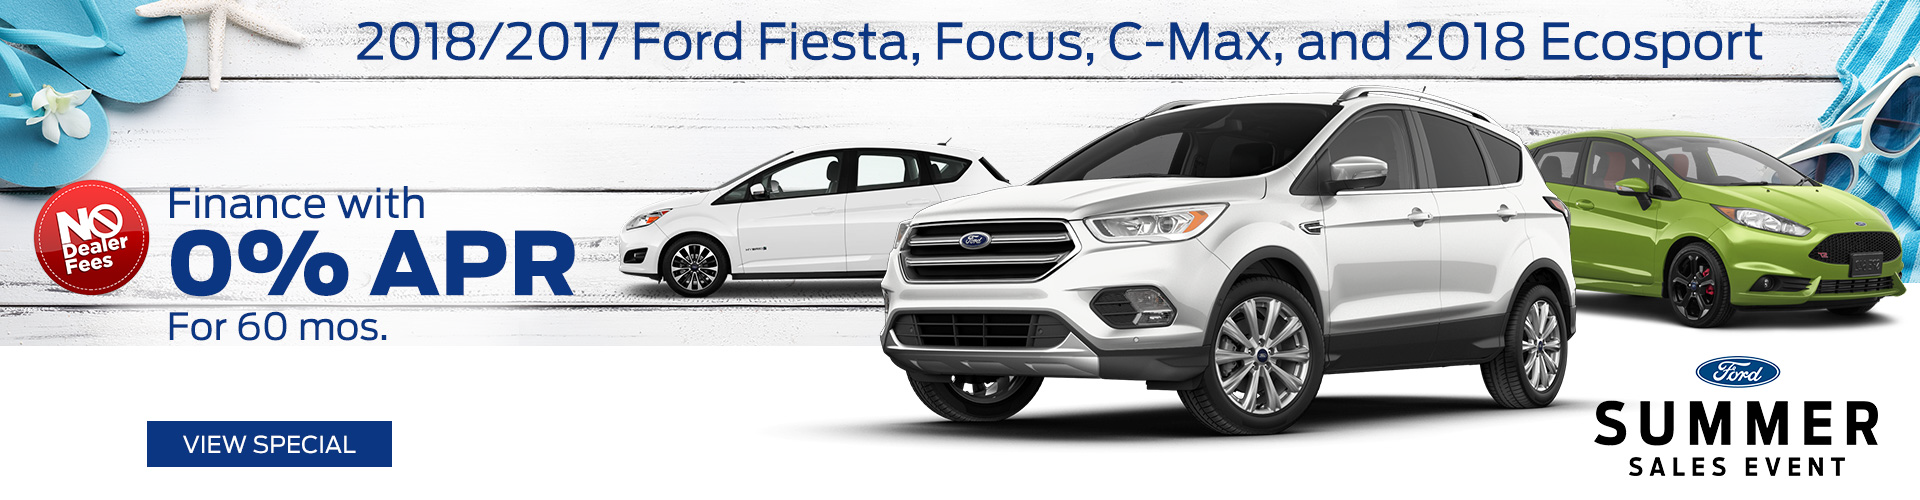 July 2018 Ford Fiesta, Focus, C-Max, & EcoSport Special